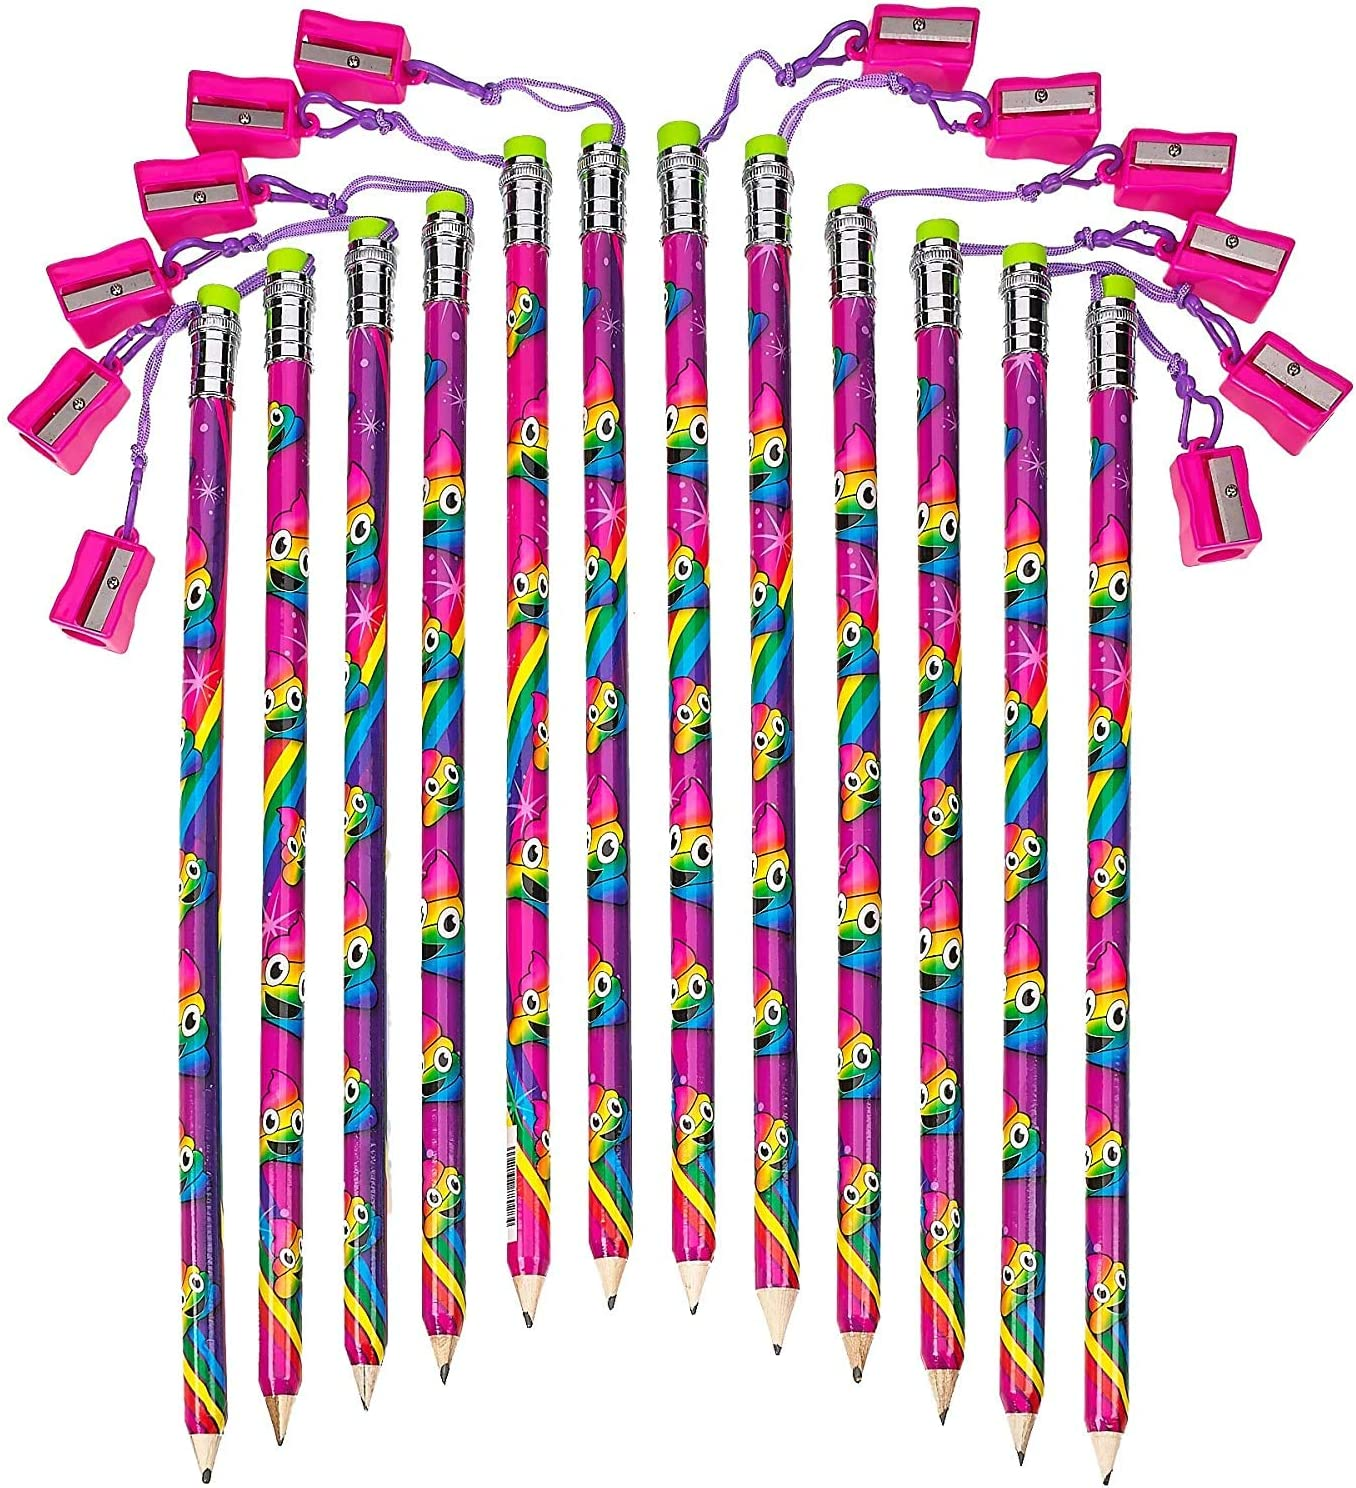 Kicko Mega Magical Rainbow Pencil with - gift Pack 12 Sharpener Direct sale of manufacturer 15